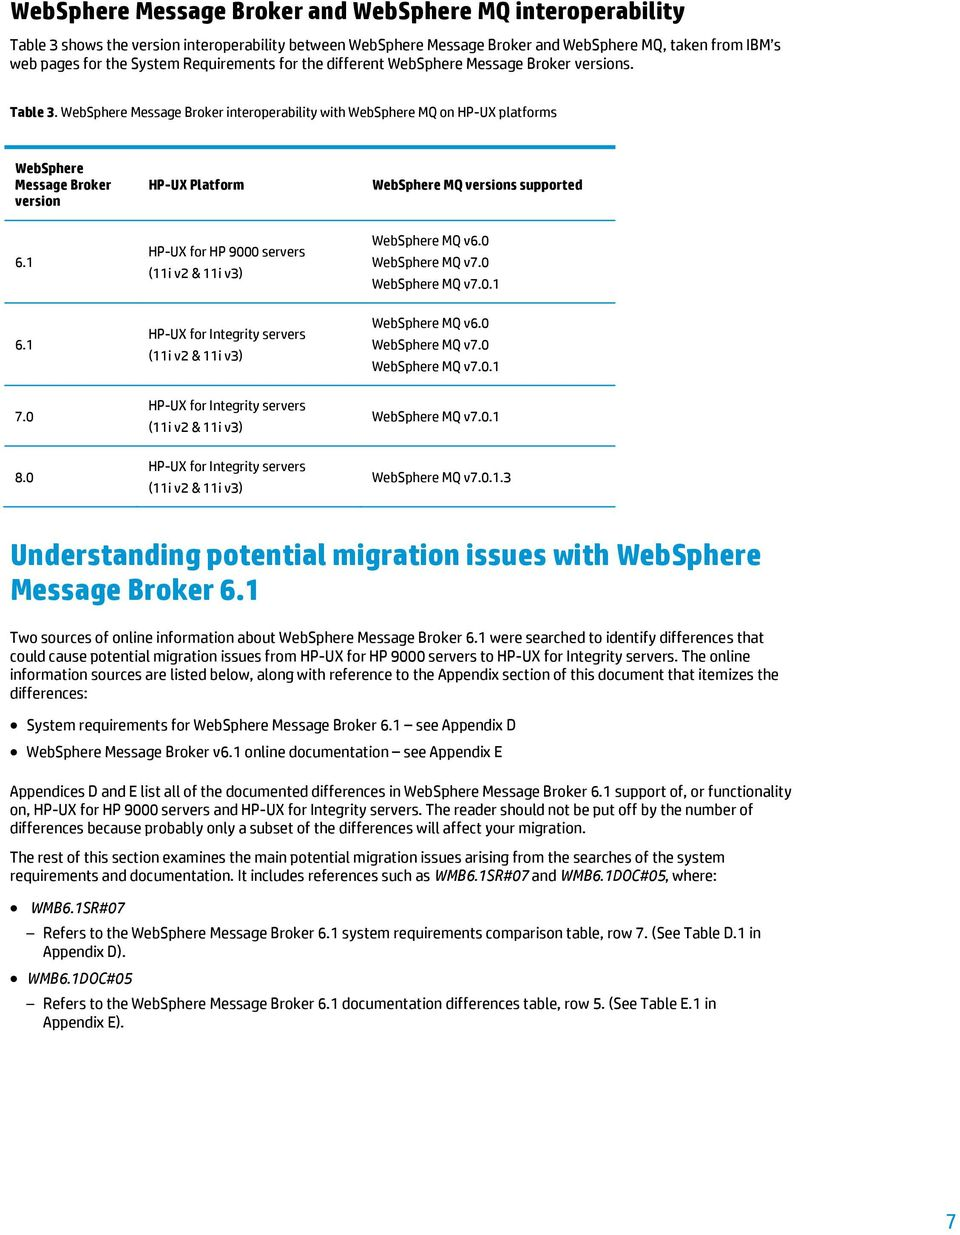 WebSphere Message Broker interoperability with WebSphere MQ on HP-UX platforms WebSphere Message Broker version HP-UX Platform WebSphere MQ versions supported 6.